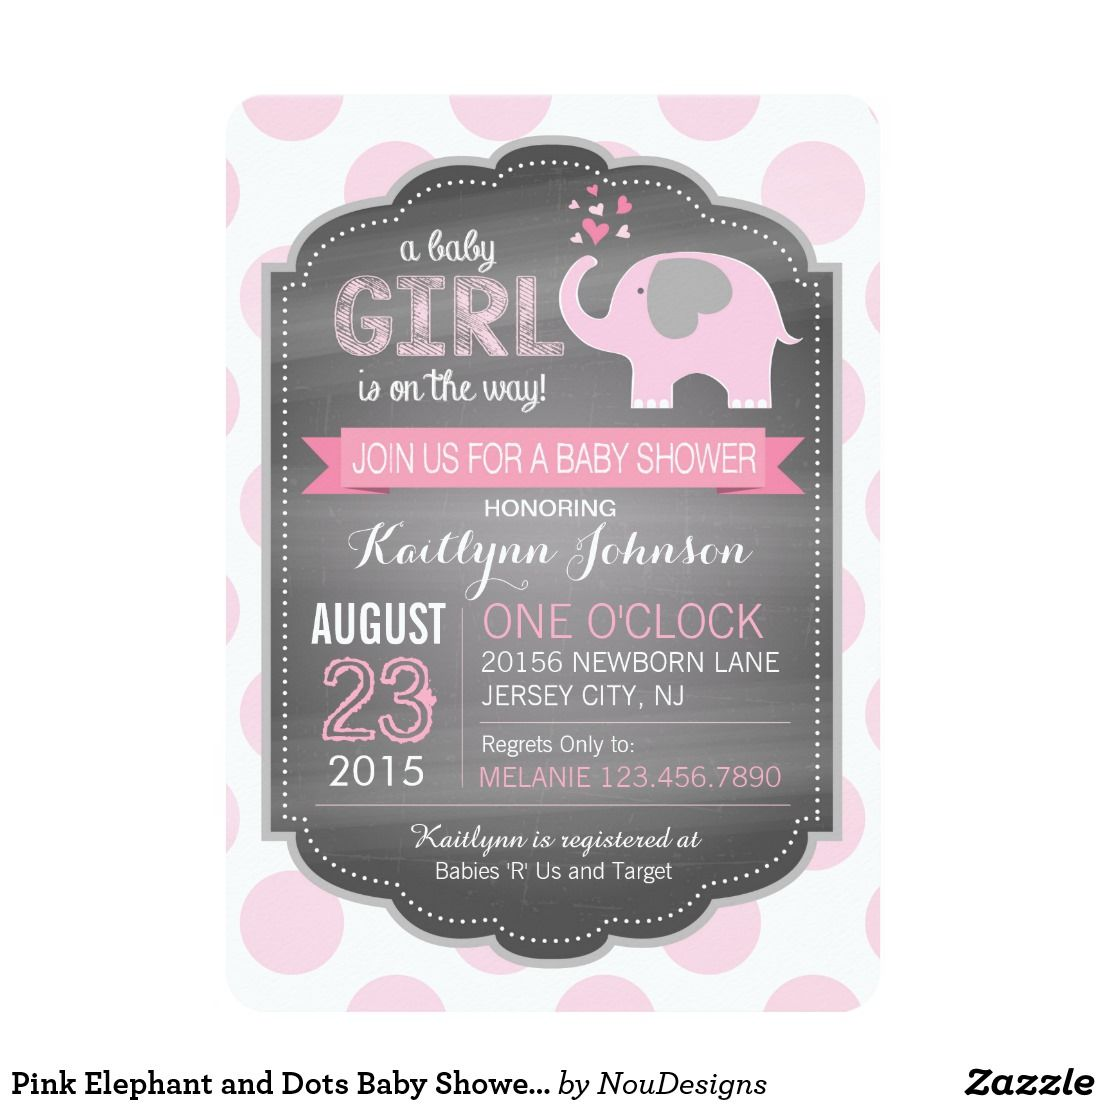 Pink Elephant and Dots Baby Shower Invitations | baby | Pinterest ...